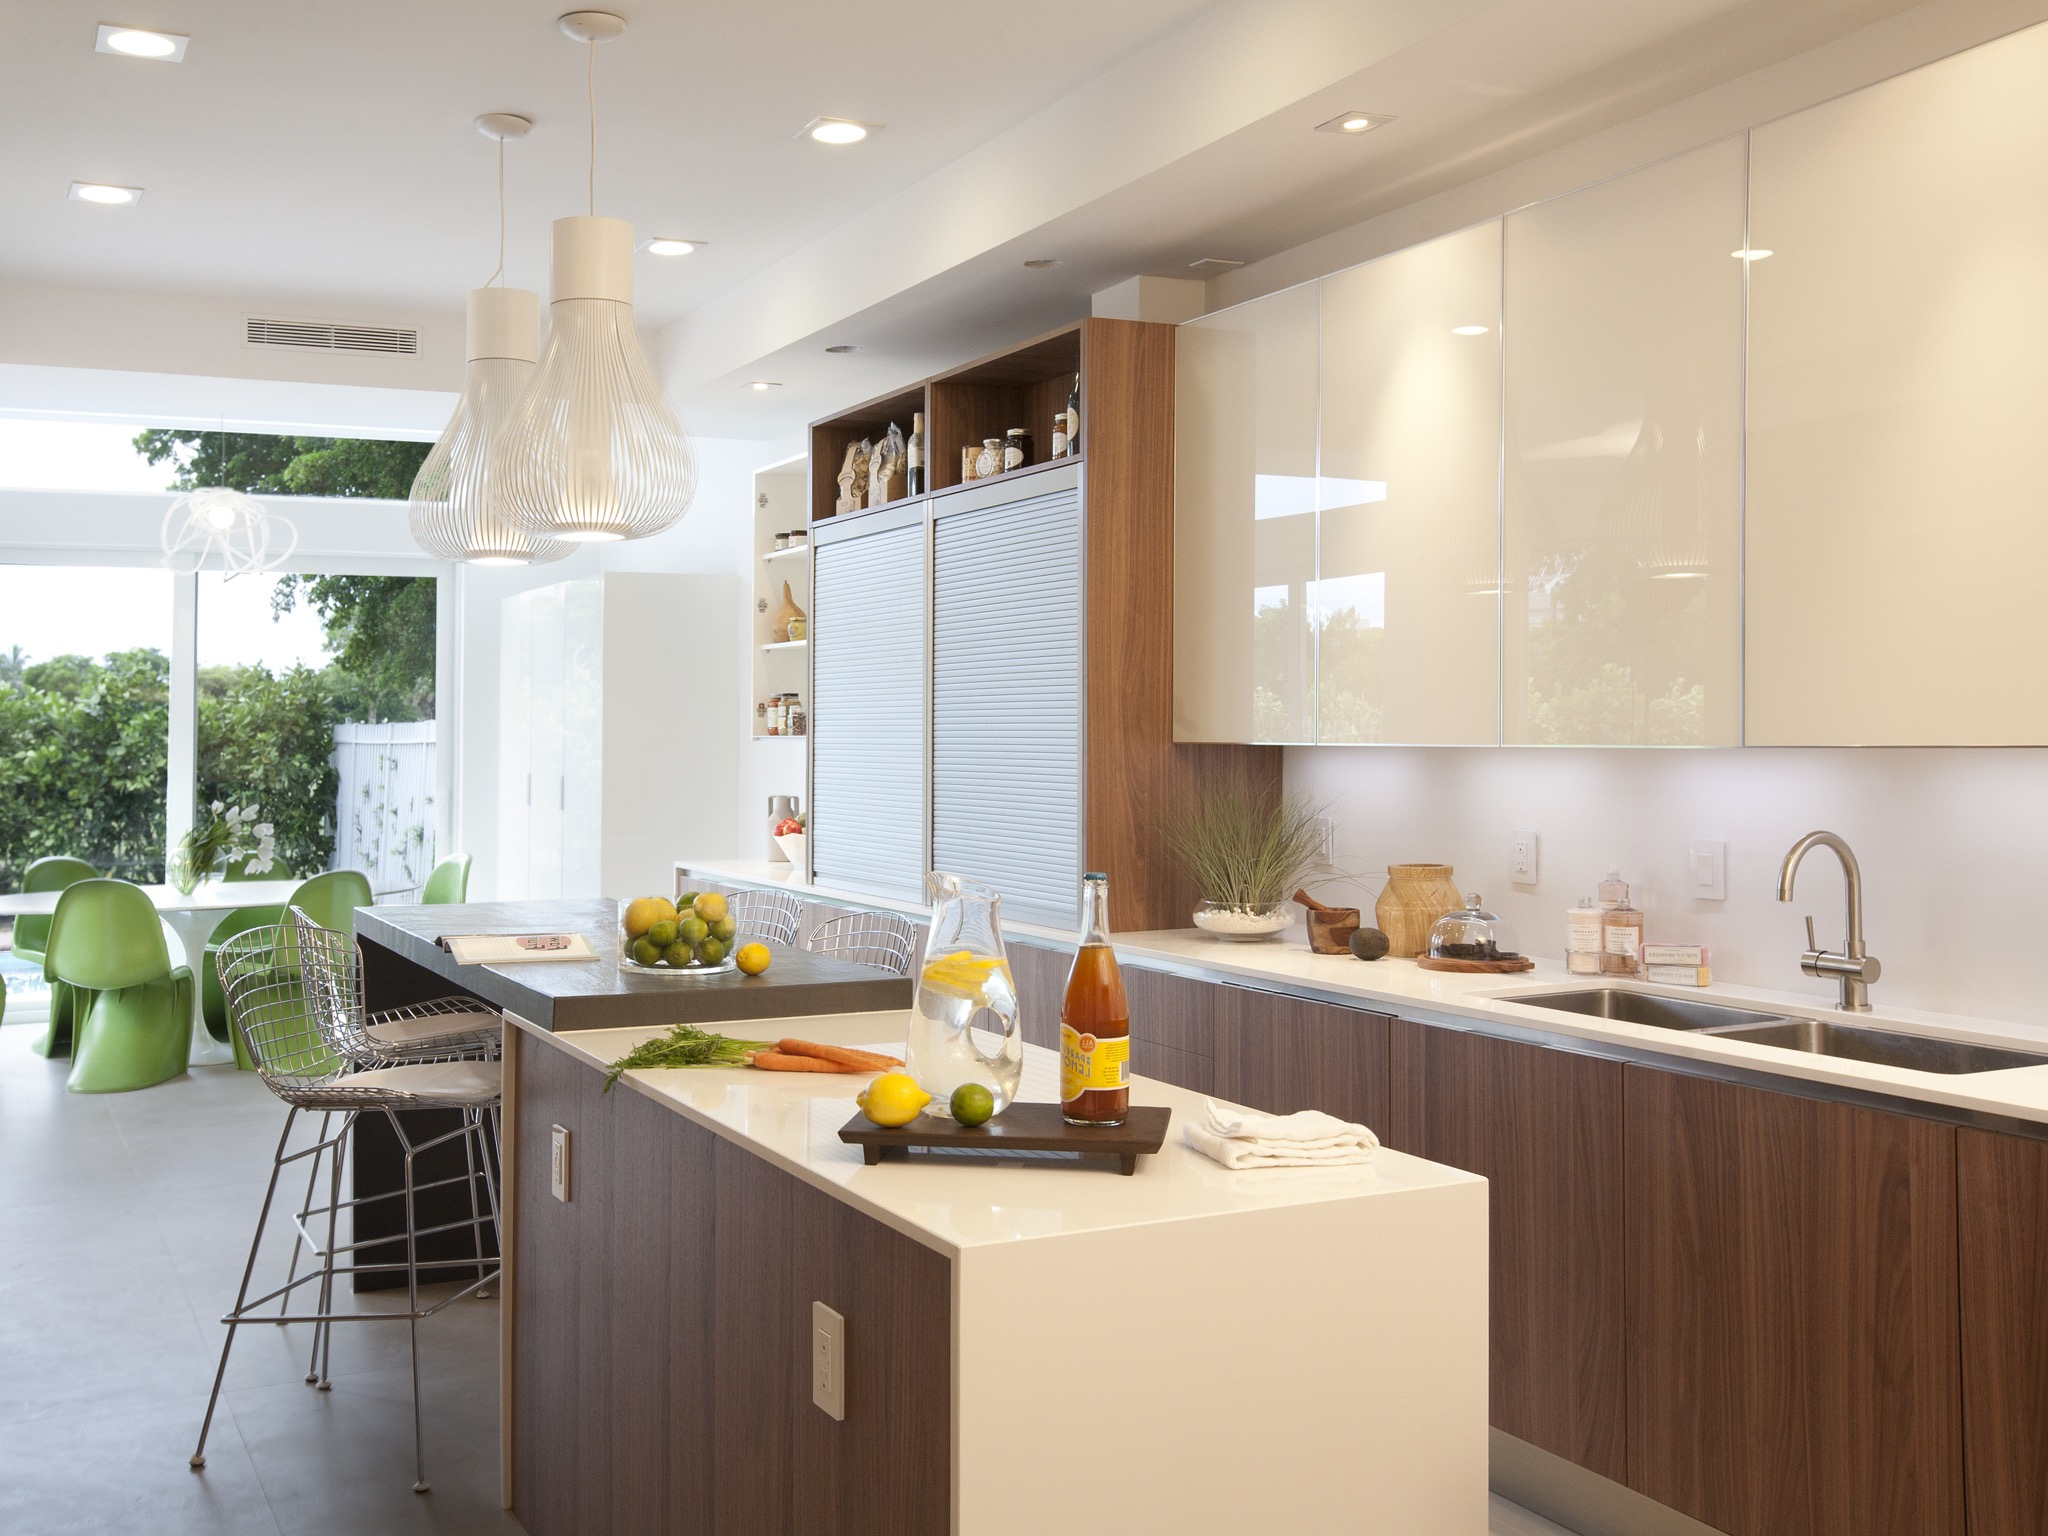 Glossy White Color For Lacquered Kitchen Cabinets (Image 7 of 18)